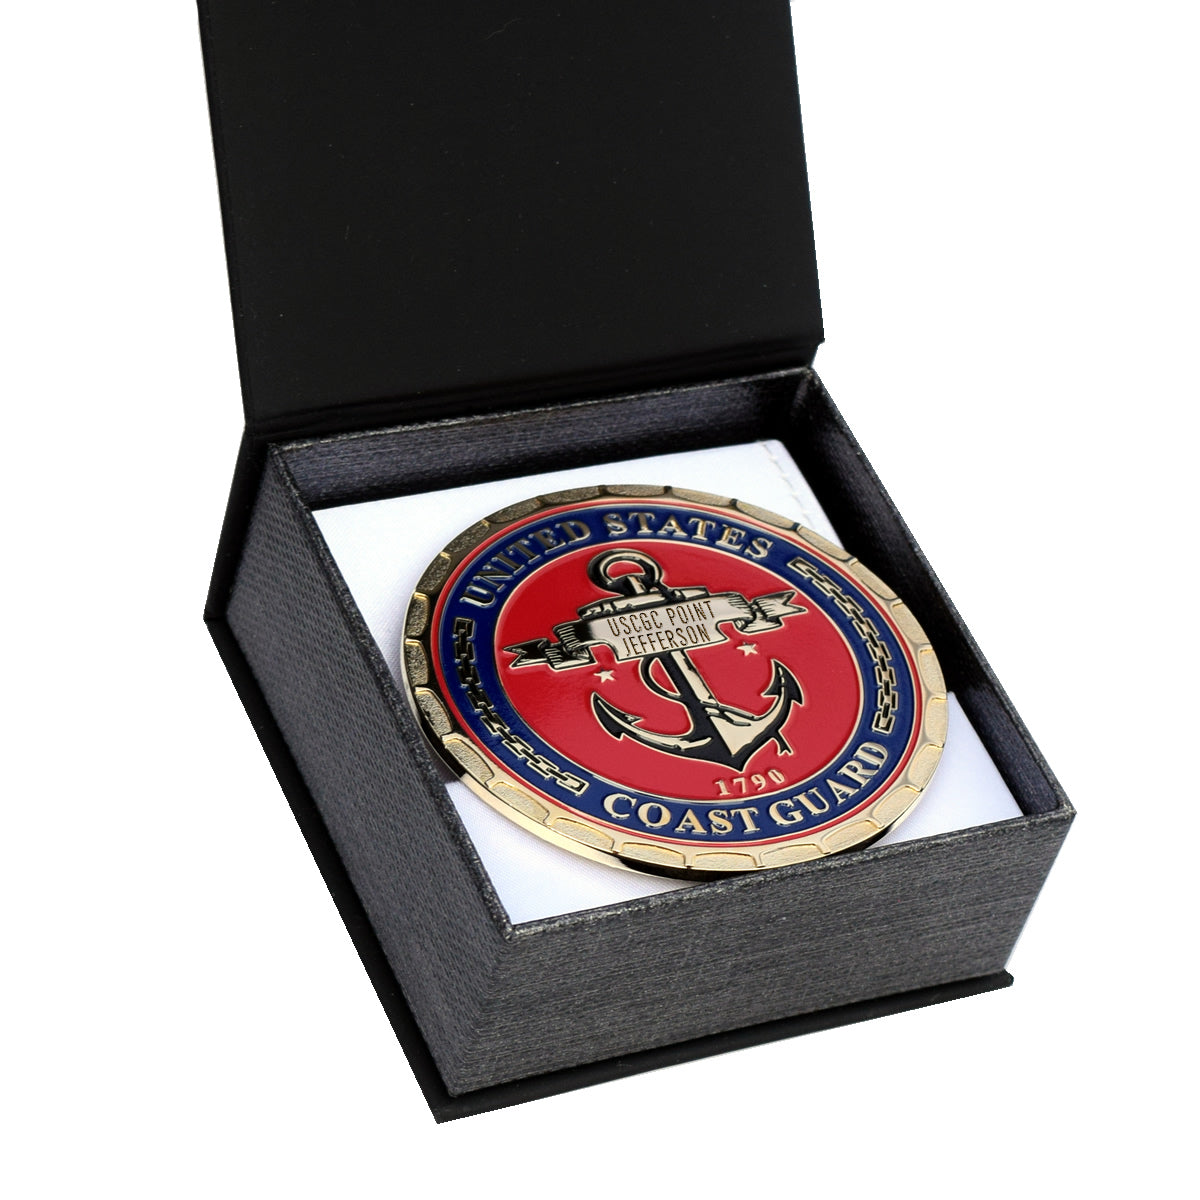 USCGC POINT JEFFERSON WPB-82306 COAST GUARD PLAQUE